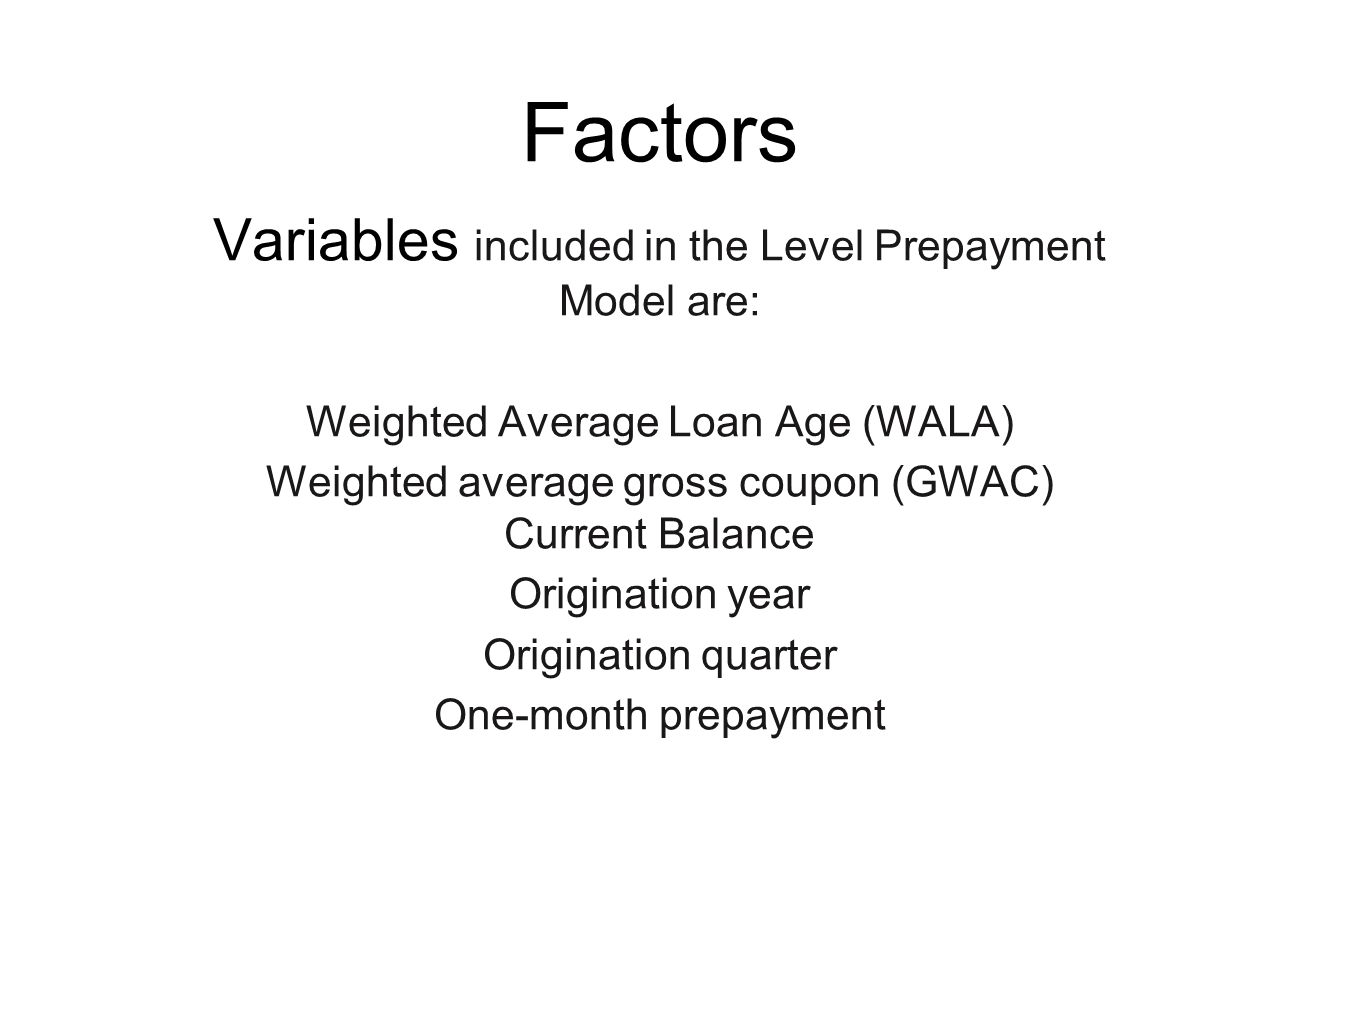 Factors Variables included in the Level Prepayment Model are: Weighted Average Loan Age (WALA) Weighted average gross coupon (GWAC) Current Balance Origination year Origination quarter One-month prepayment